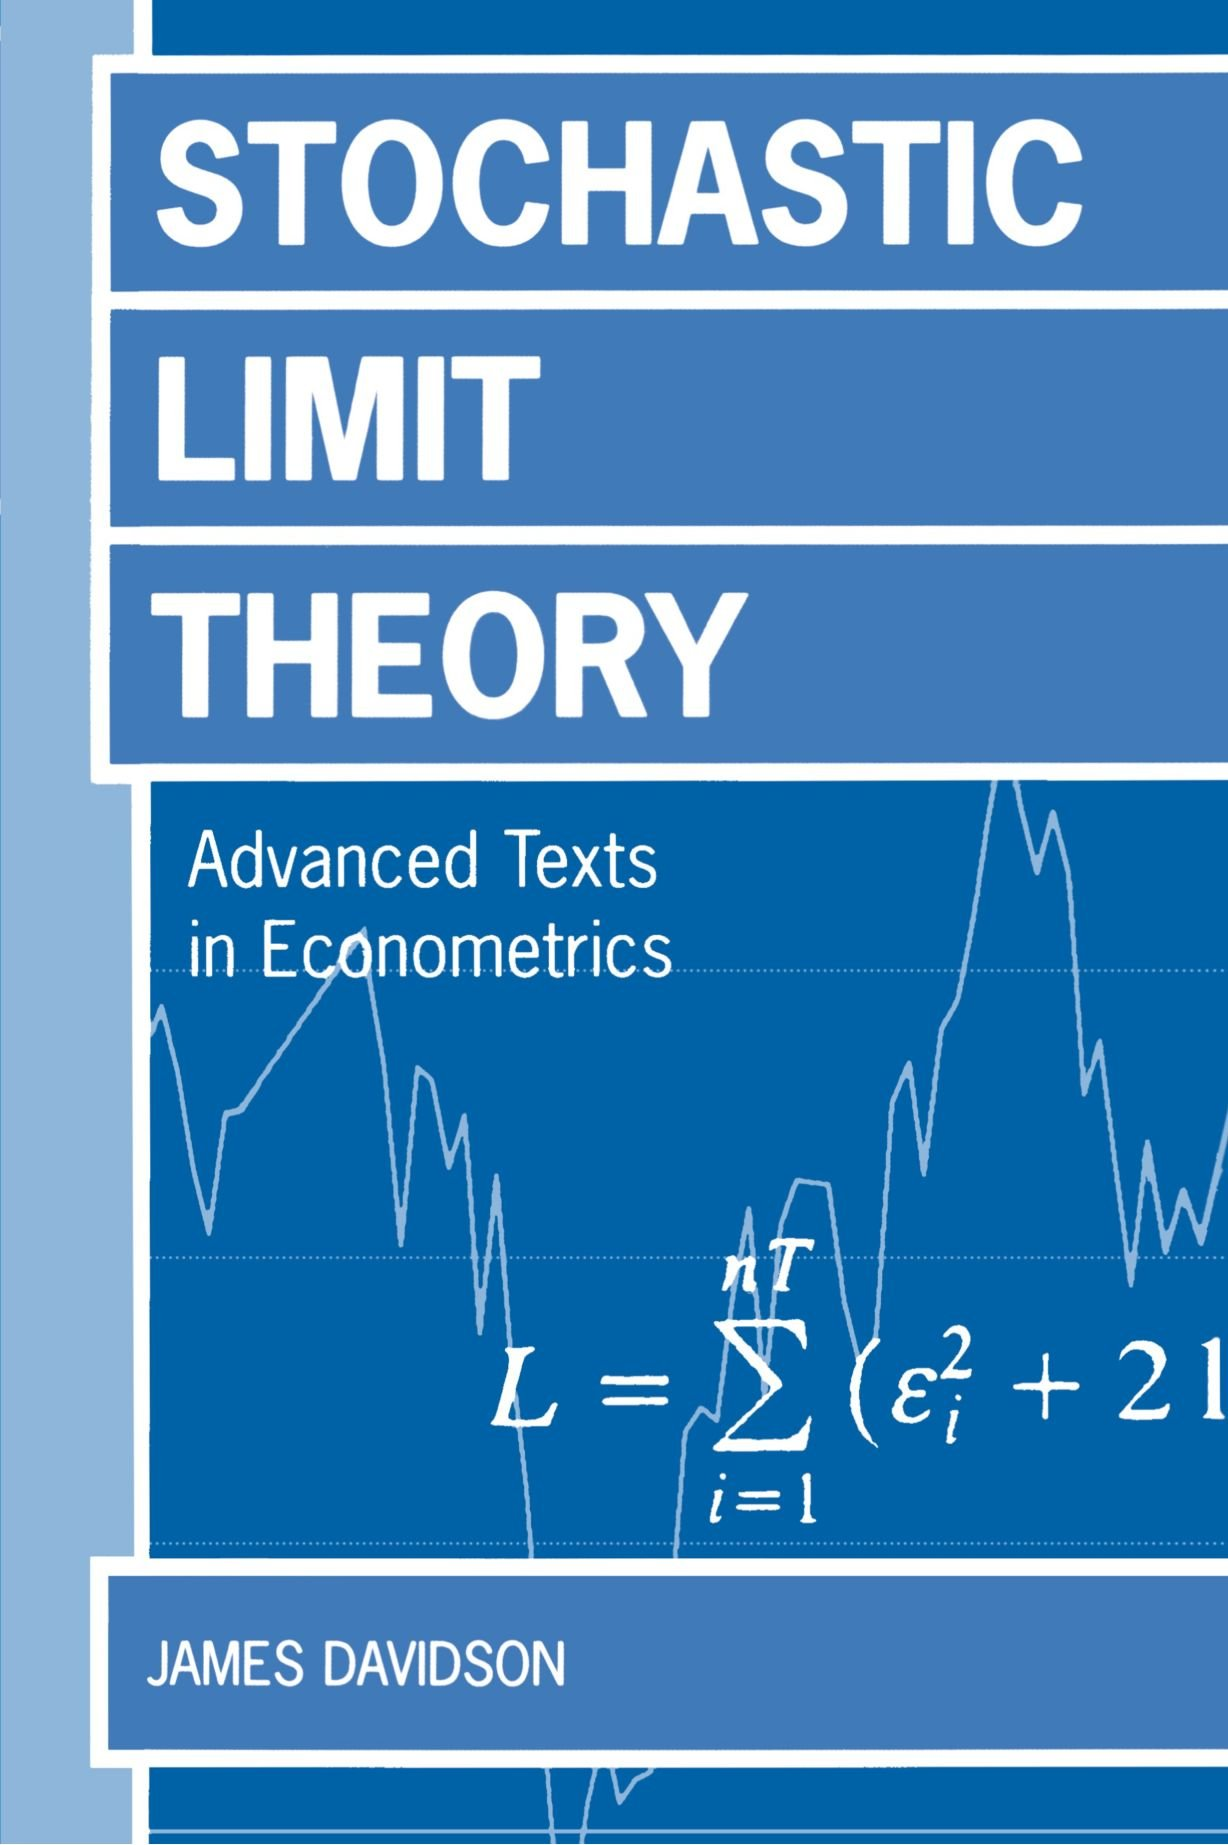 Stochastic Limit Theory: An Introduction for Econometricicans (Advanced Texts in Econometrics) by Oxford University Press